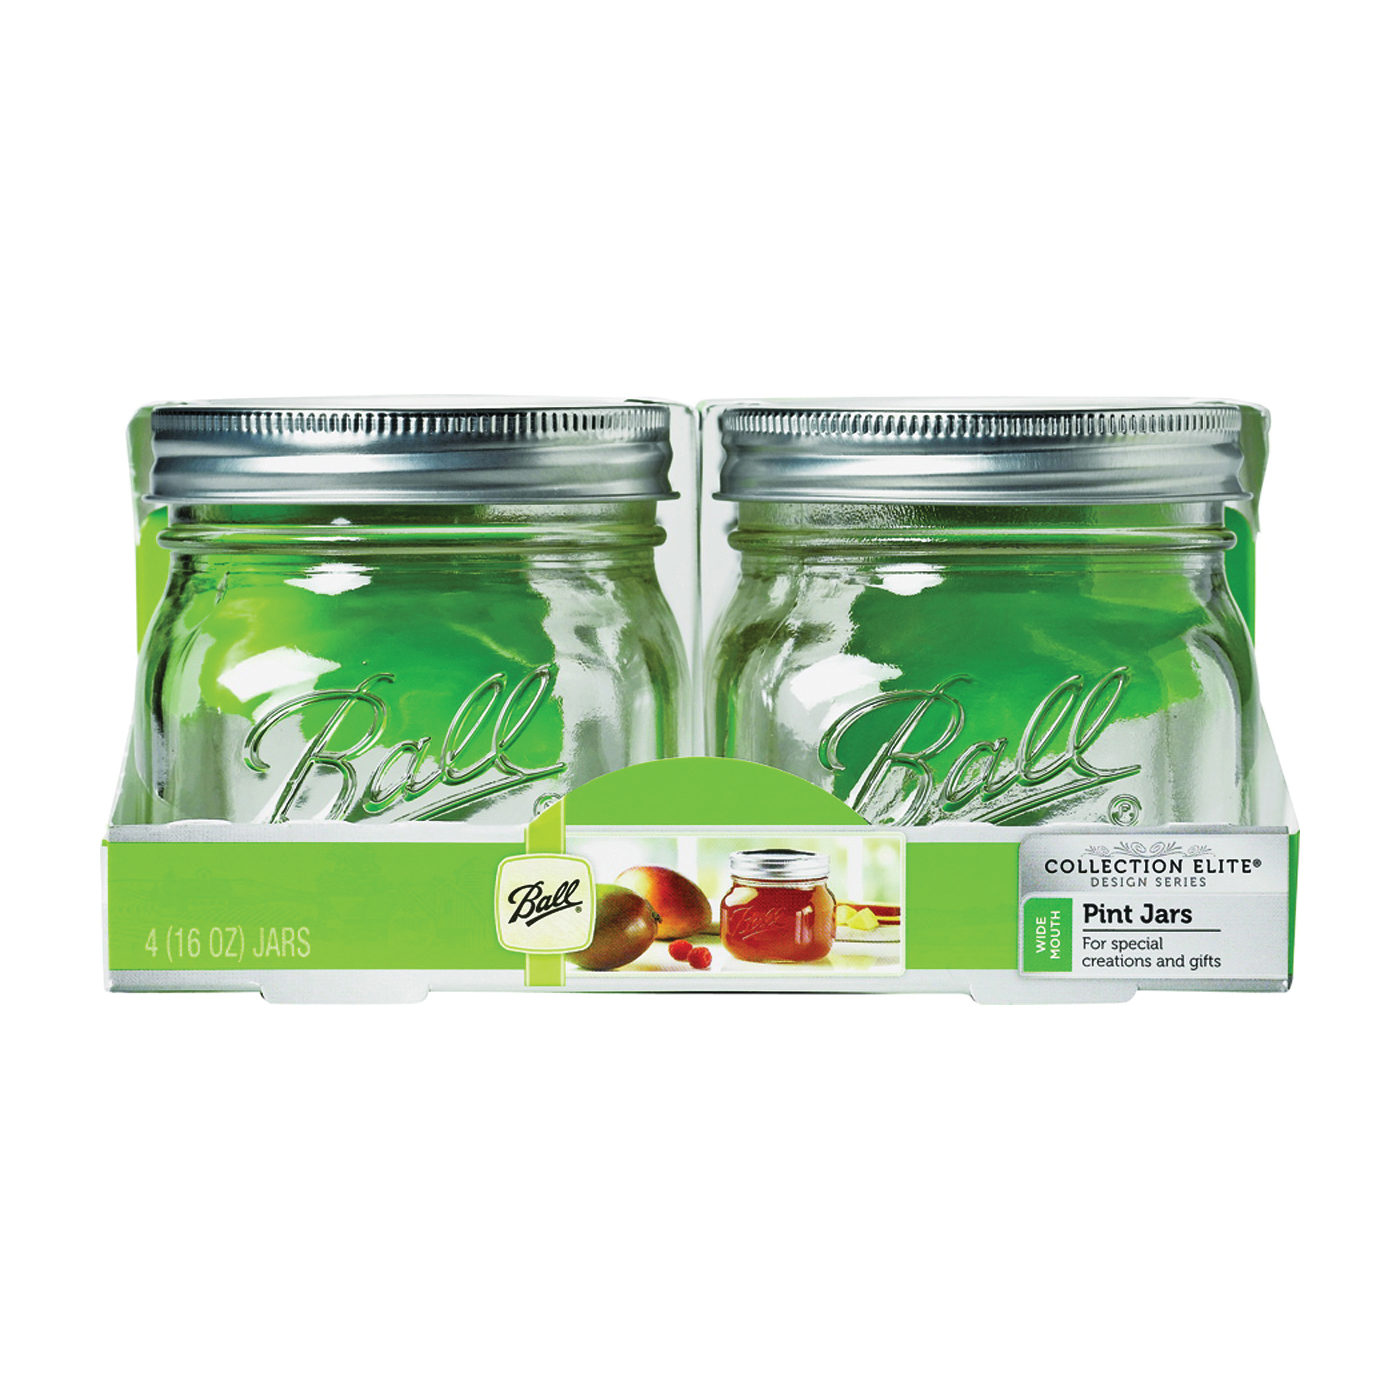 Picture of Ball Collection Elite Series 1440061180 Mason Jar, 16 oz Capacity, Glass, Silver Cap/Lid